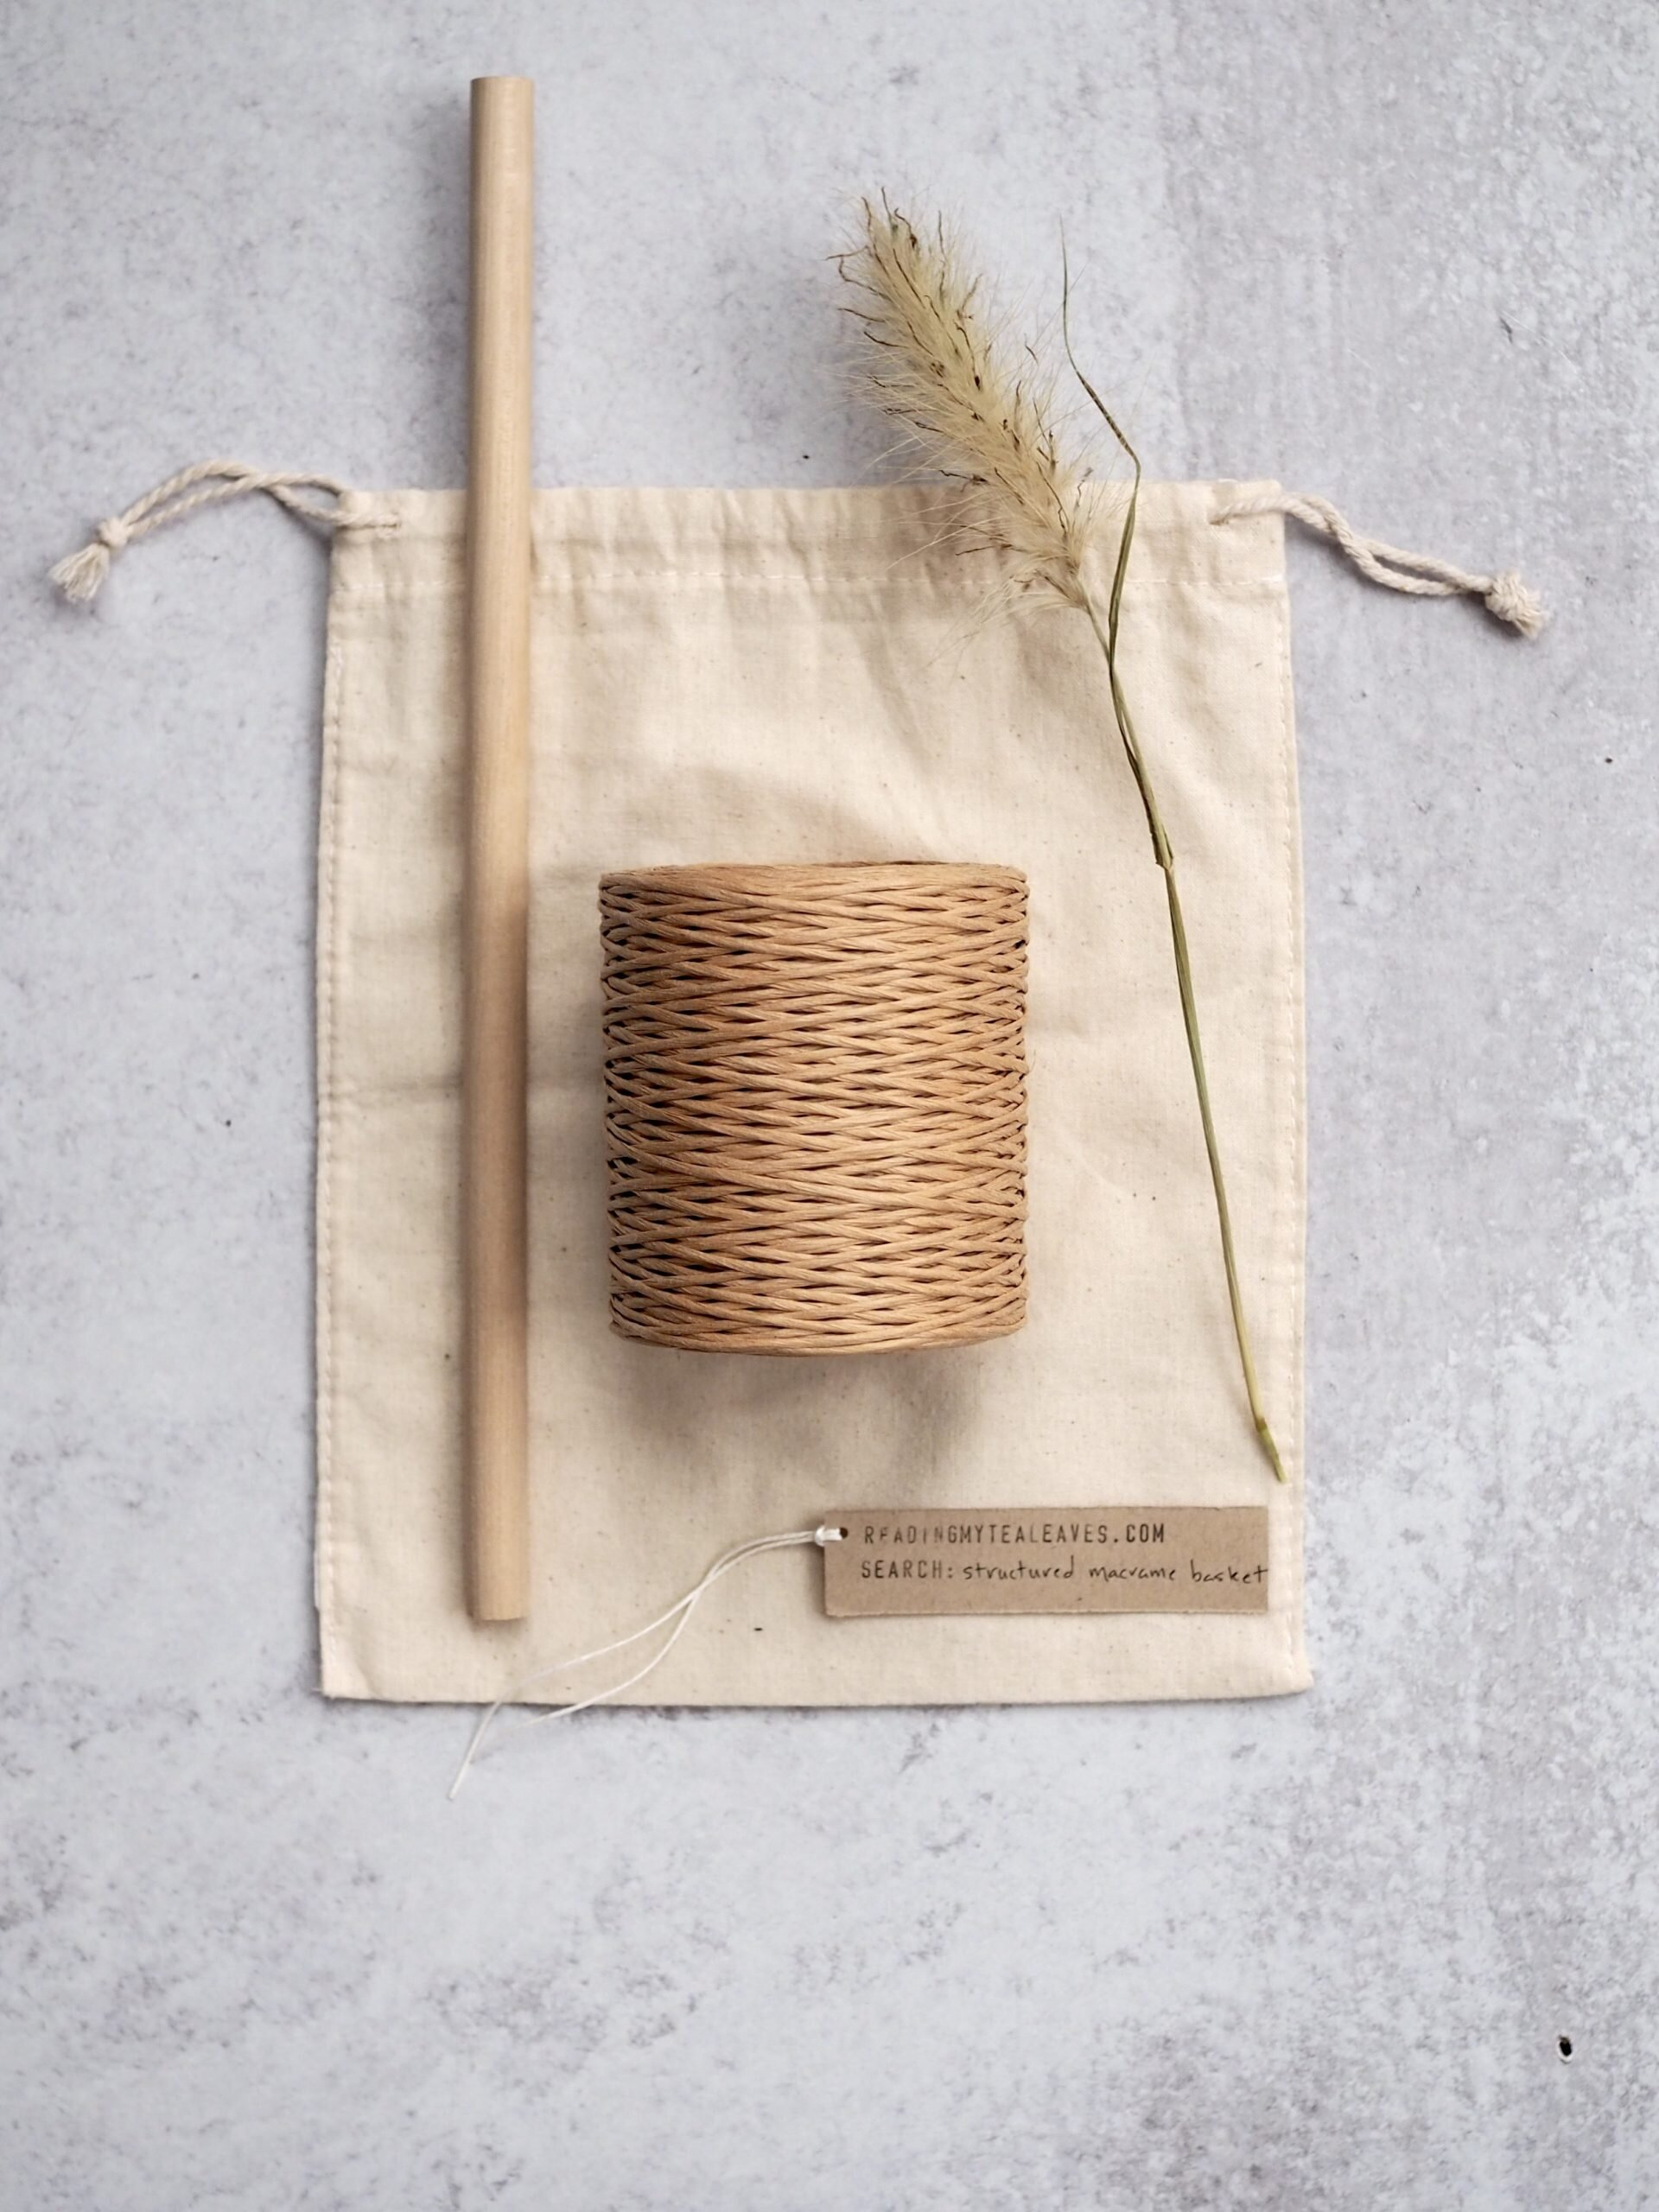 floral wire macrame basket | reading my tea leaves